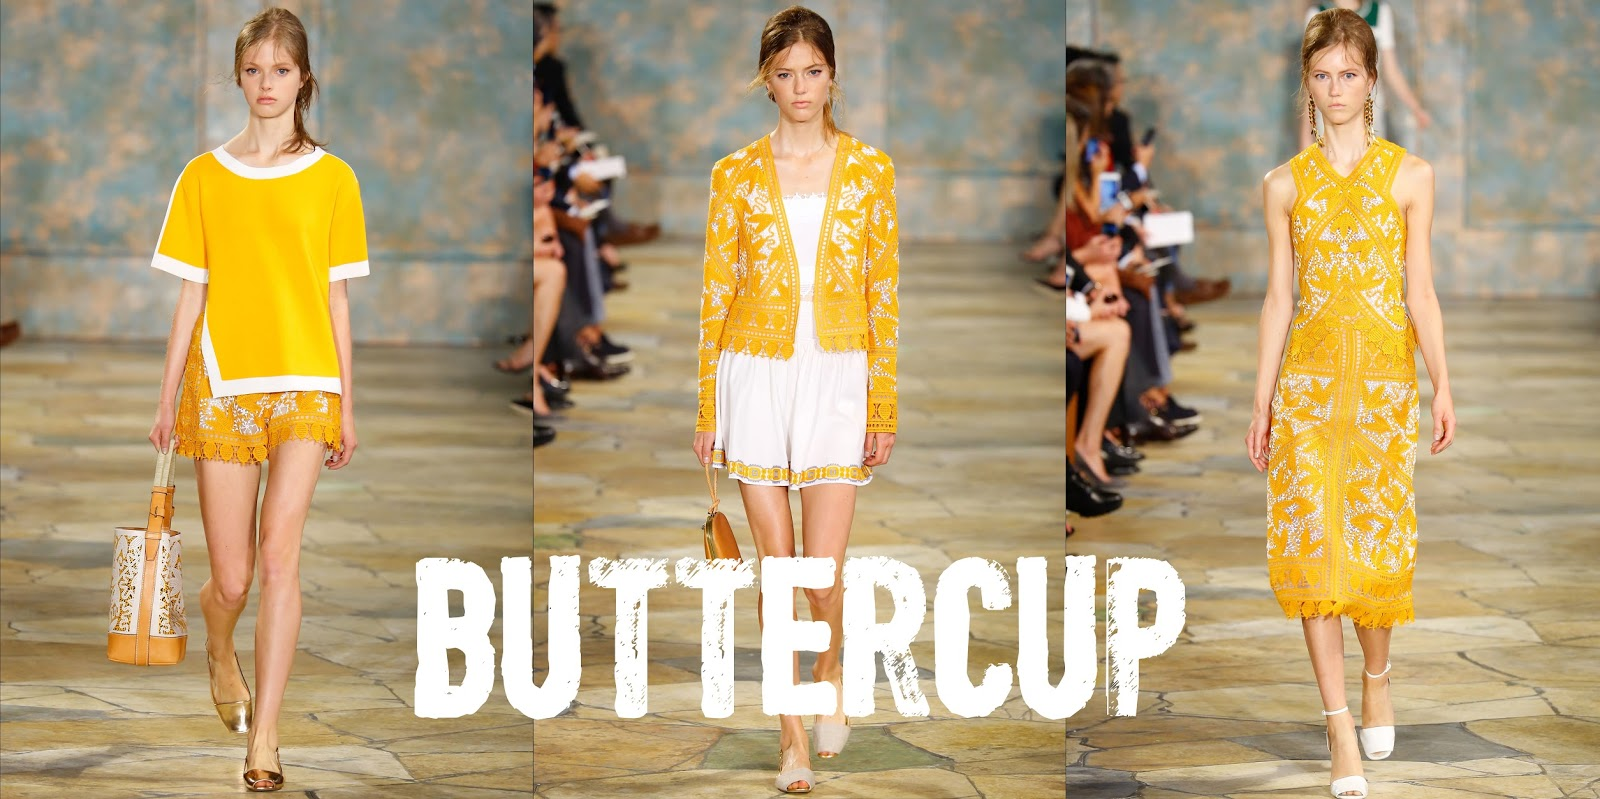 Eniwhere Fashion - Buttercup Pantone color